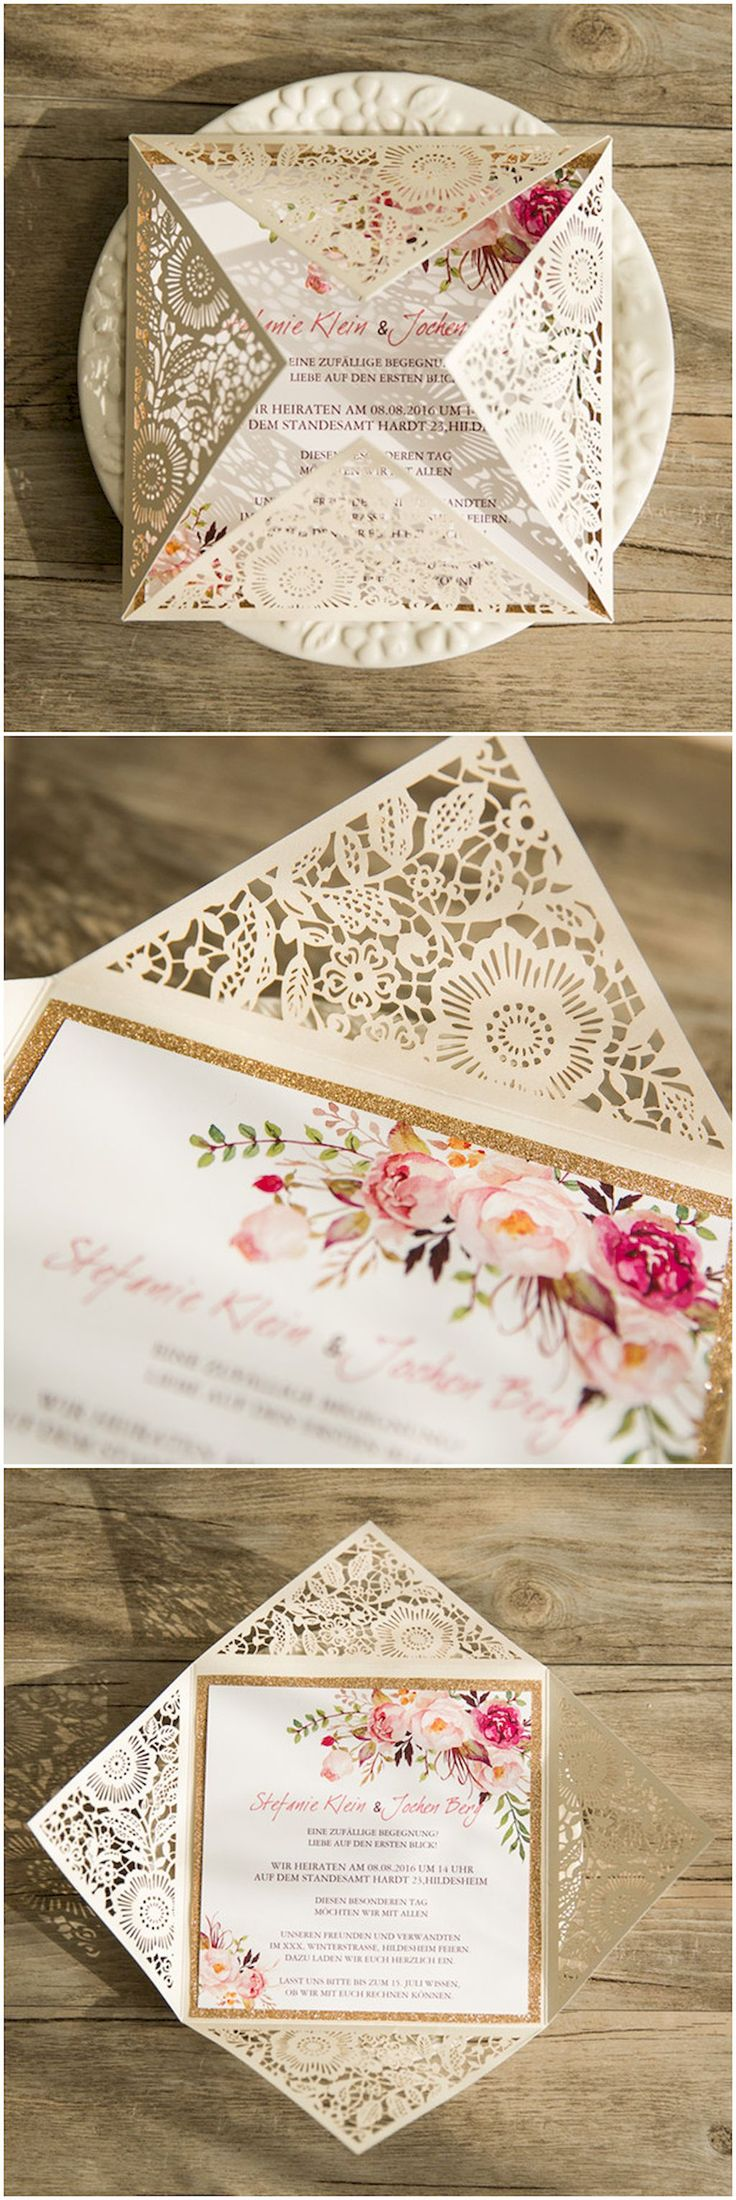 Gorgeous 34 Beautiful Floral Wedding Invitation Ideas https://bitecloth.com/2017/07/18/34-beautiful-floral-wedding-invitation-ideas/